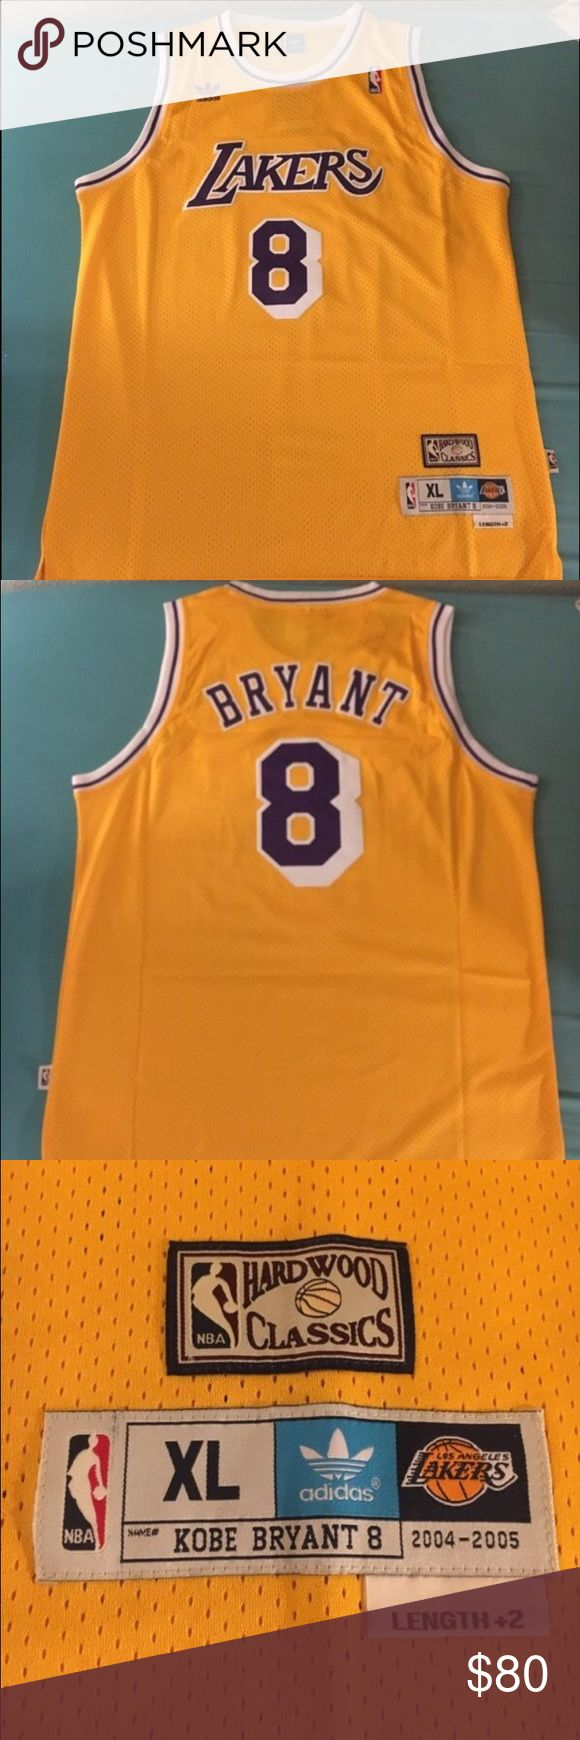 ef71a4b2974 ... Swingman Home Jersey Throwback Kobe Bryant 8 Lakers jersey Kobe Bryant  Los Angeles Lakers home jersey. Throwback Adidas NBA Los Angeles ...